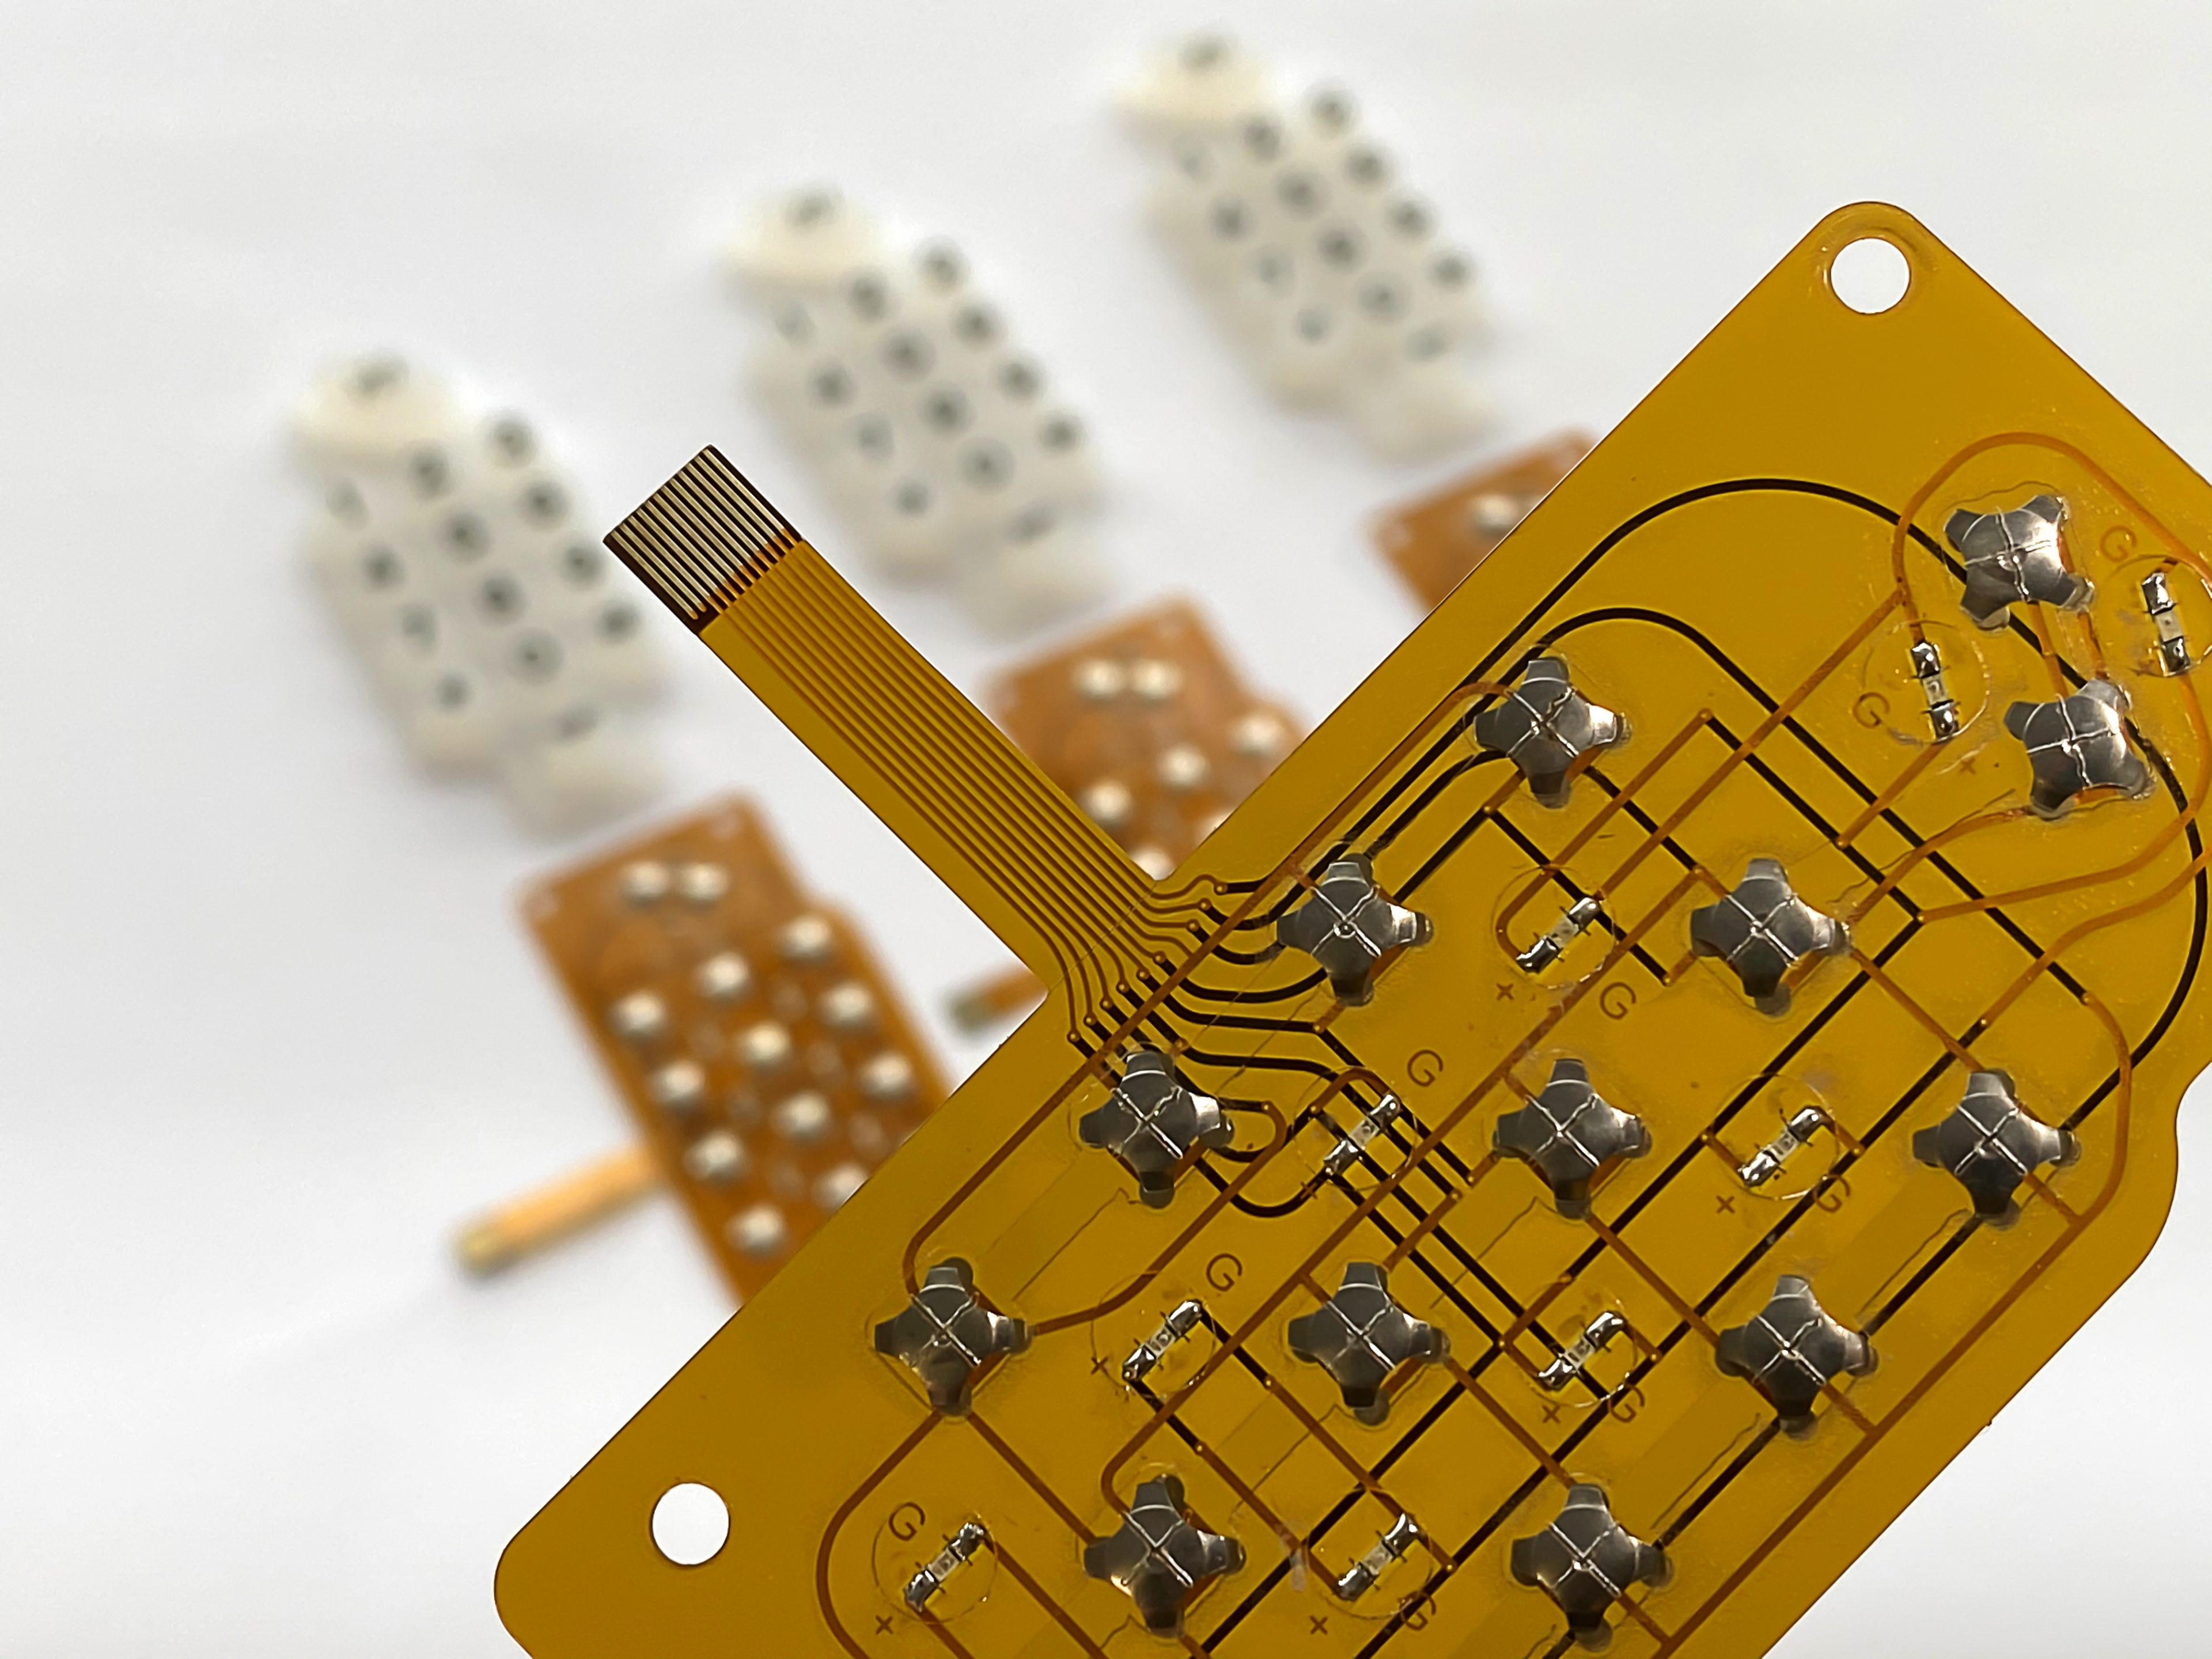 Rubber Keypads - in background behind circuit board